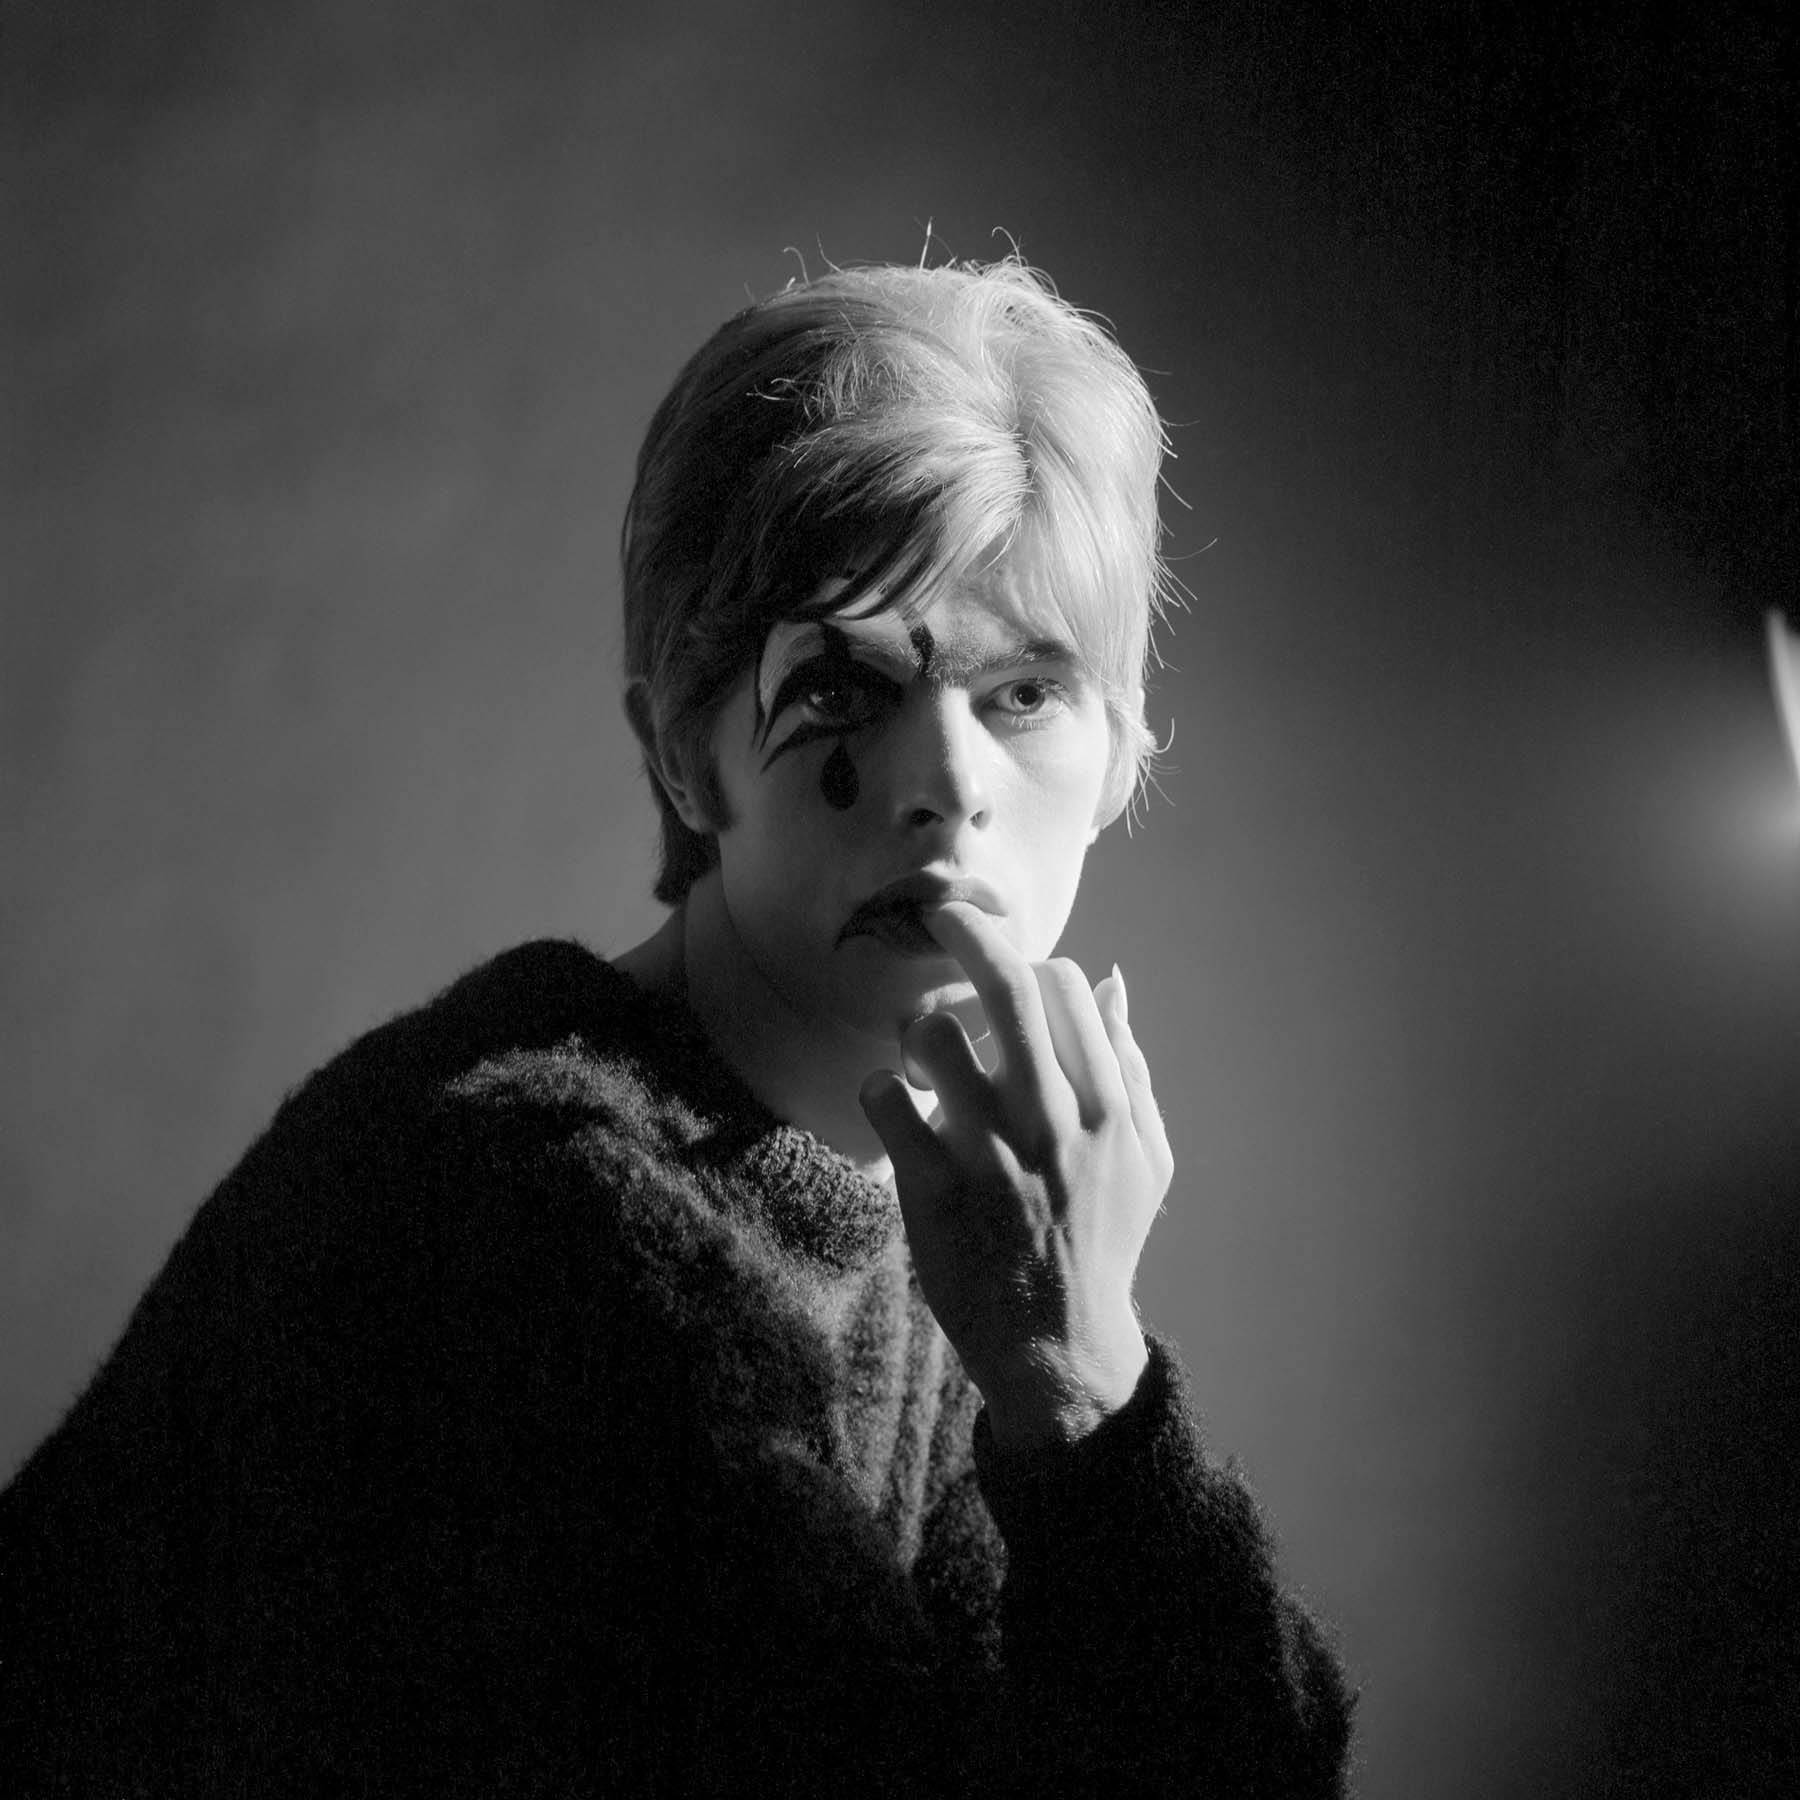 David Bowie by Gerald Fearnley